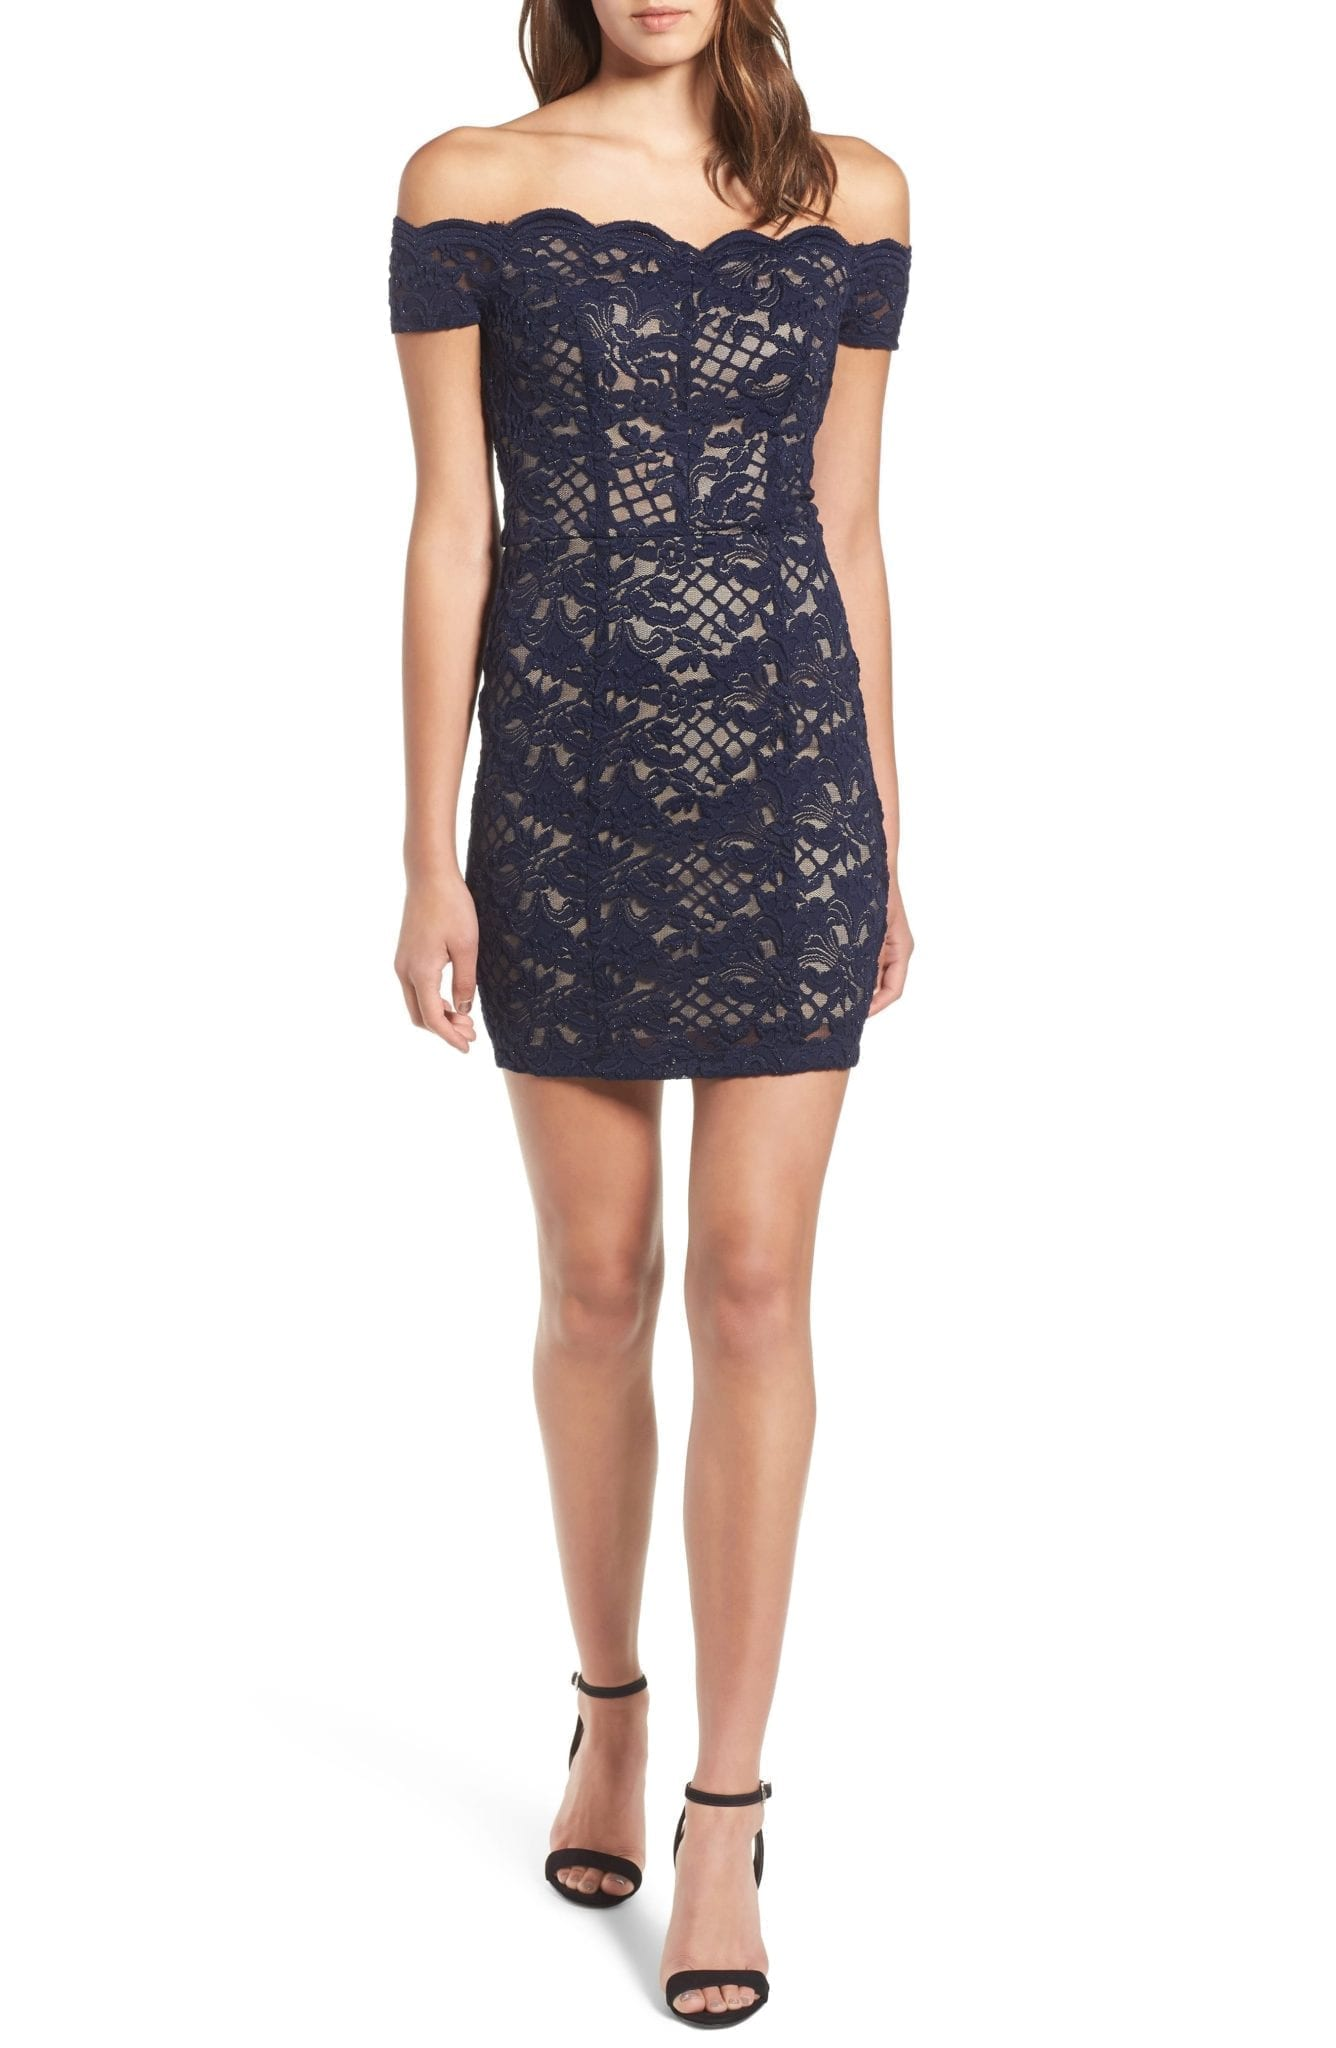 SPEECHLESS Lace Off the Shoulder Body-Con Navy / Taupe Dress